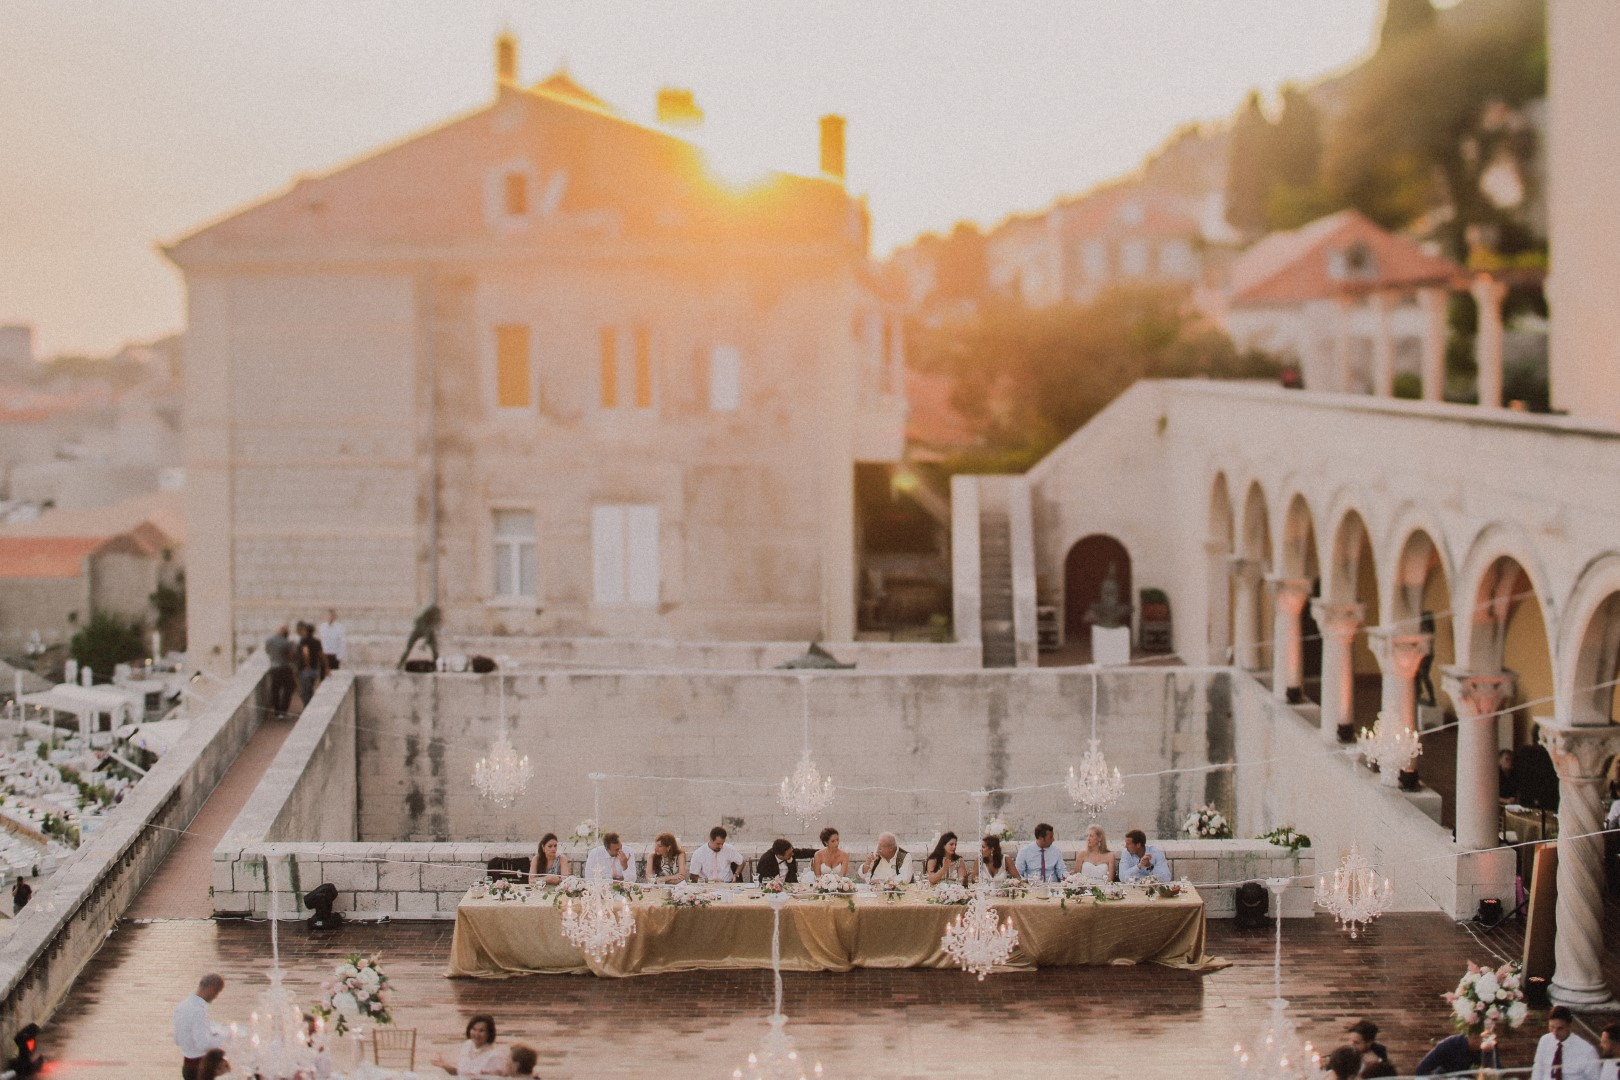 Aerial shot of the Dubrovnik art gallery terrace. On the right side are columns and on the left a view of the beach. In the middle is the top table with the bride, groom and their closest friends and family. Above them are chandeliers. The sun is setting.